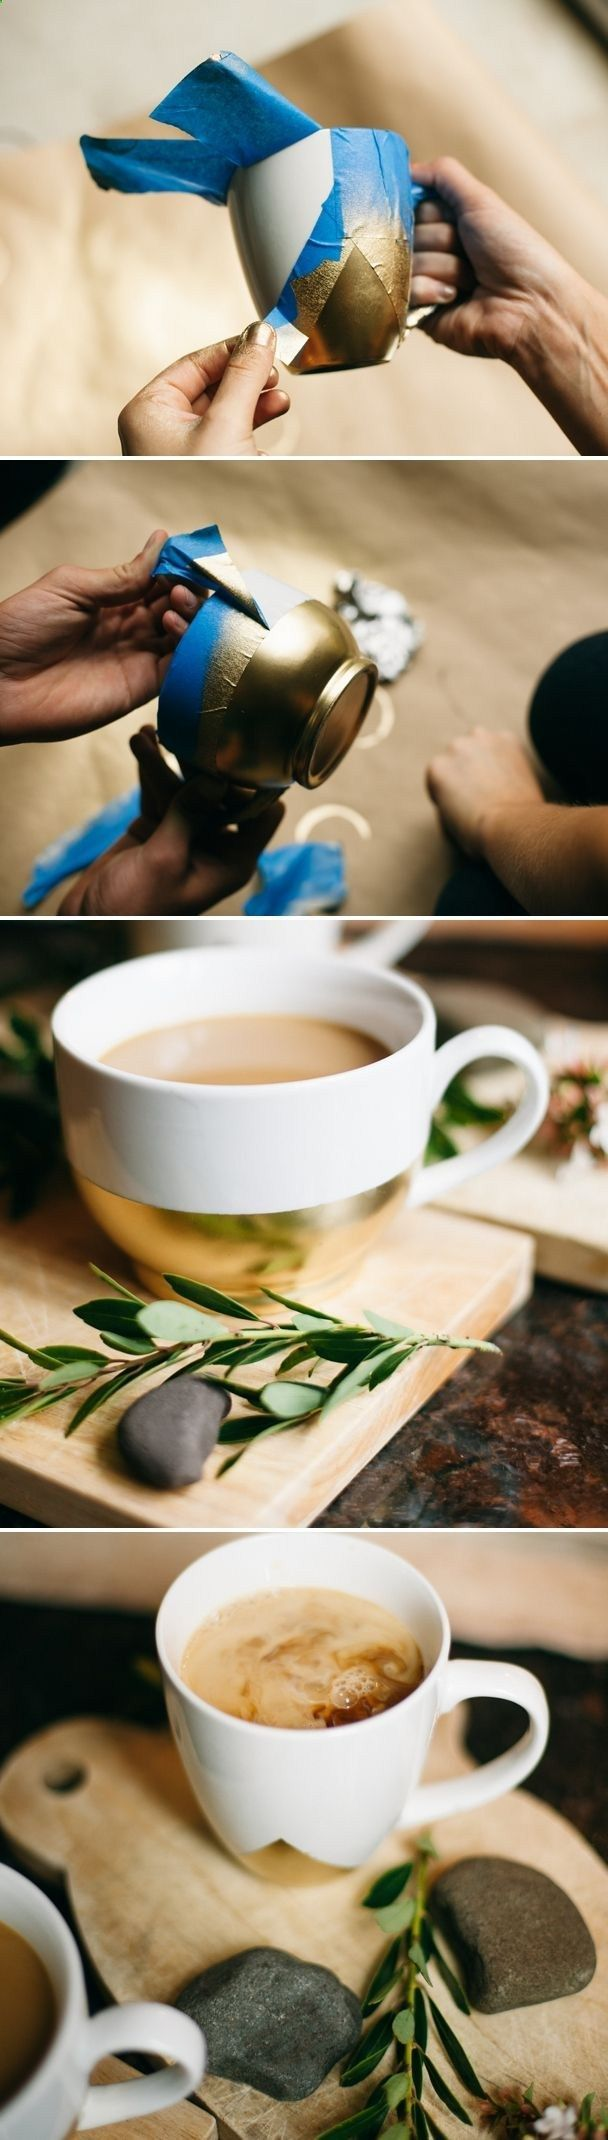 DIY #gold painted mugs. Sometimes simple lines are the best.  // Follow SoFreshandSoChic.com - a new fashion and lifestyle blog - for more gold inspiration. #sofreshandsochic